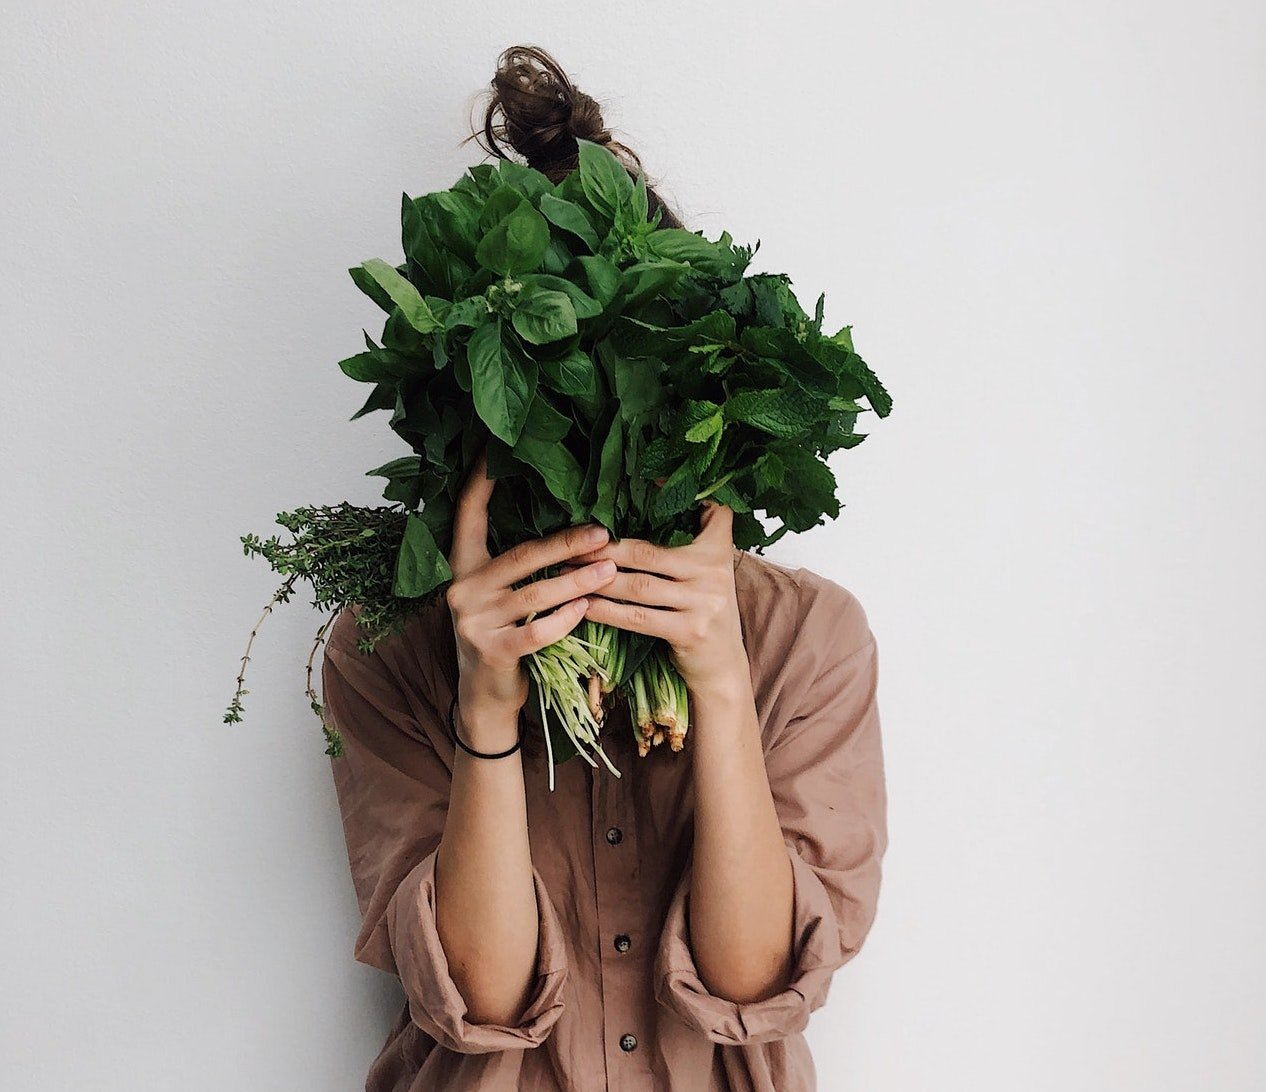 Young woman holding green plants over her face; Paleo diet